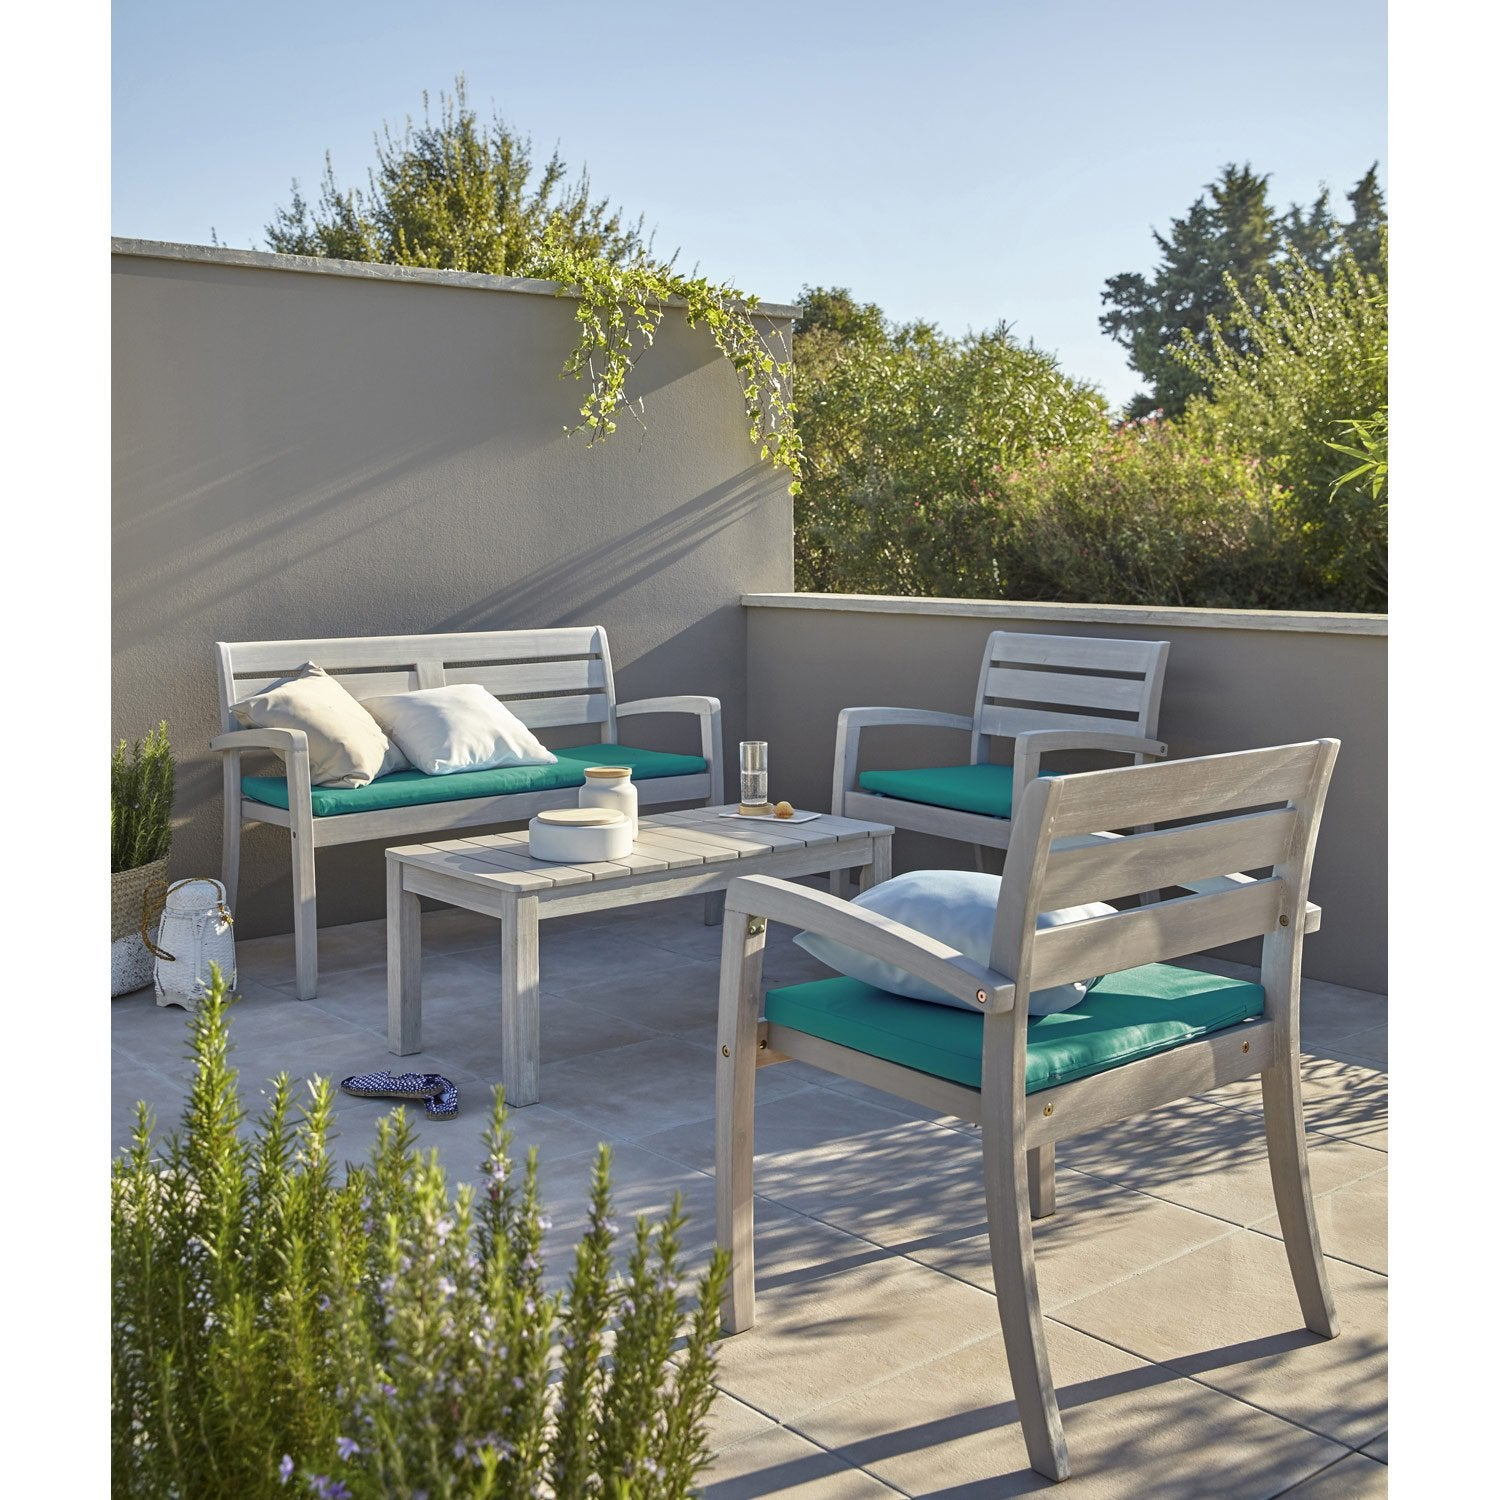 Salon de jardin portofino bois naturel 1 table 2 - Salons de jardin leroy merlin ...